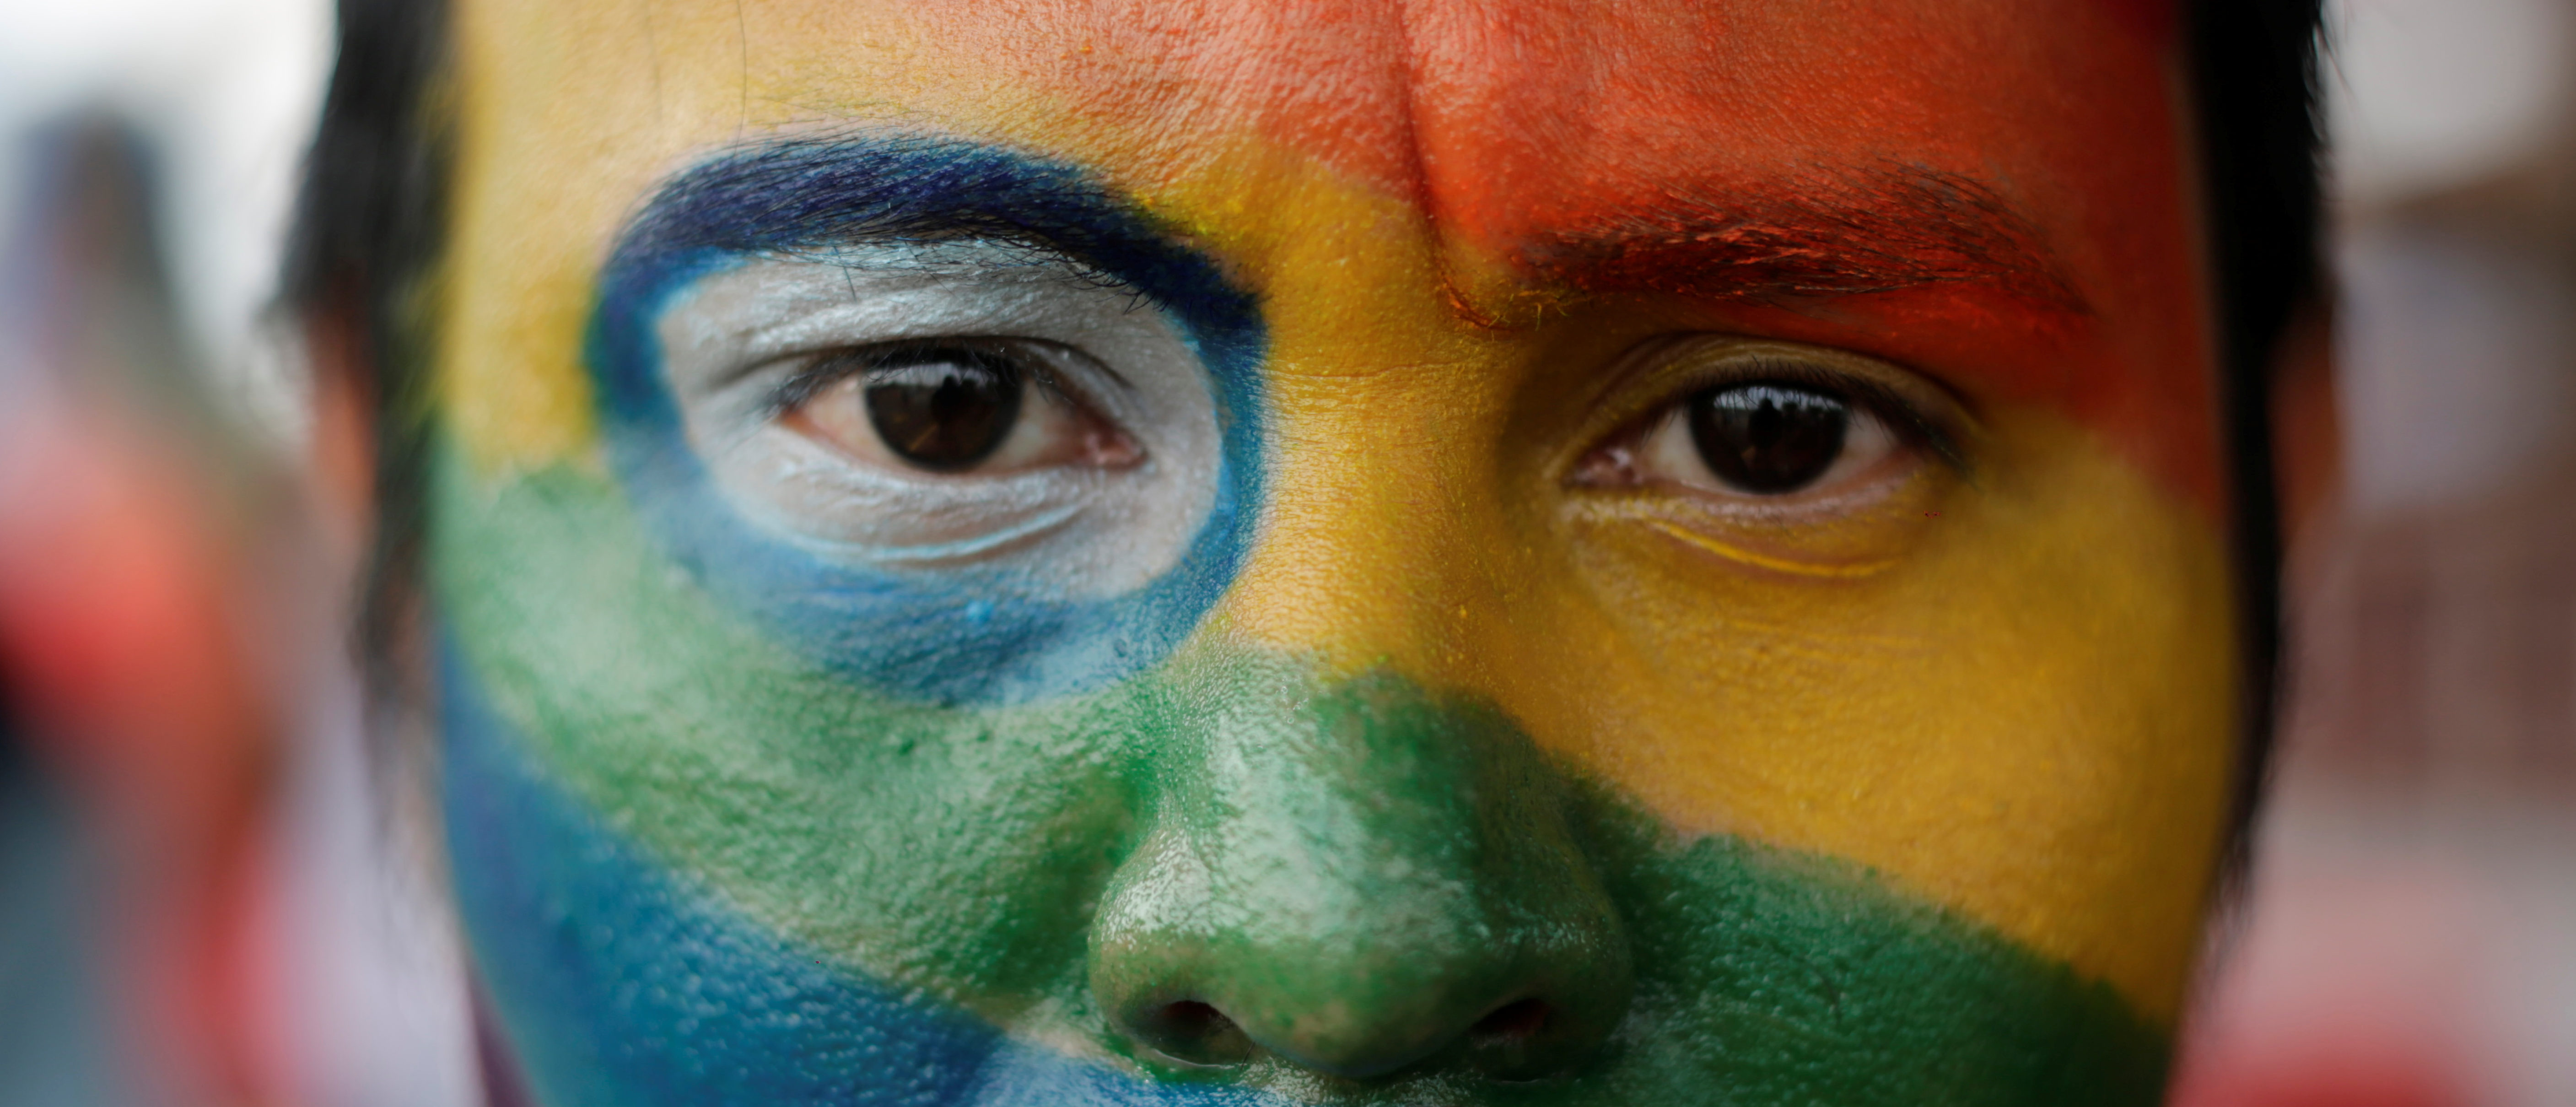 An activist with his face painted in the colours of the rainbow flag participates in a march organized by the LGBT community in Managua, Nicaragua, June 28, 2018. REUTERS/Jorge Cabrera